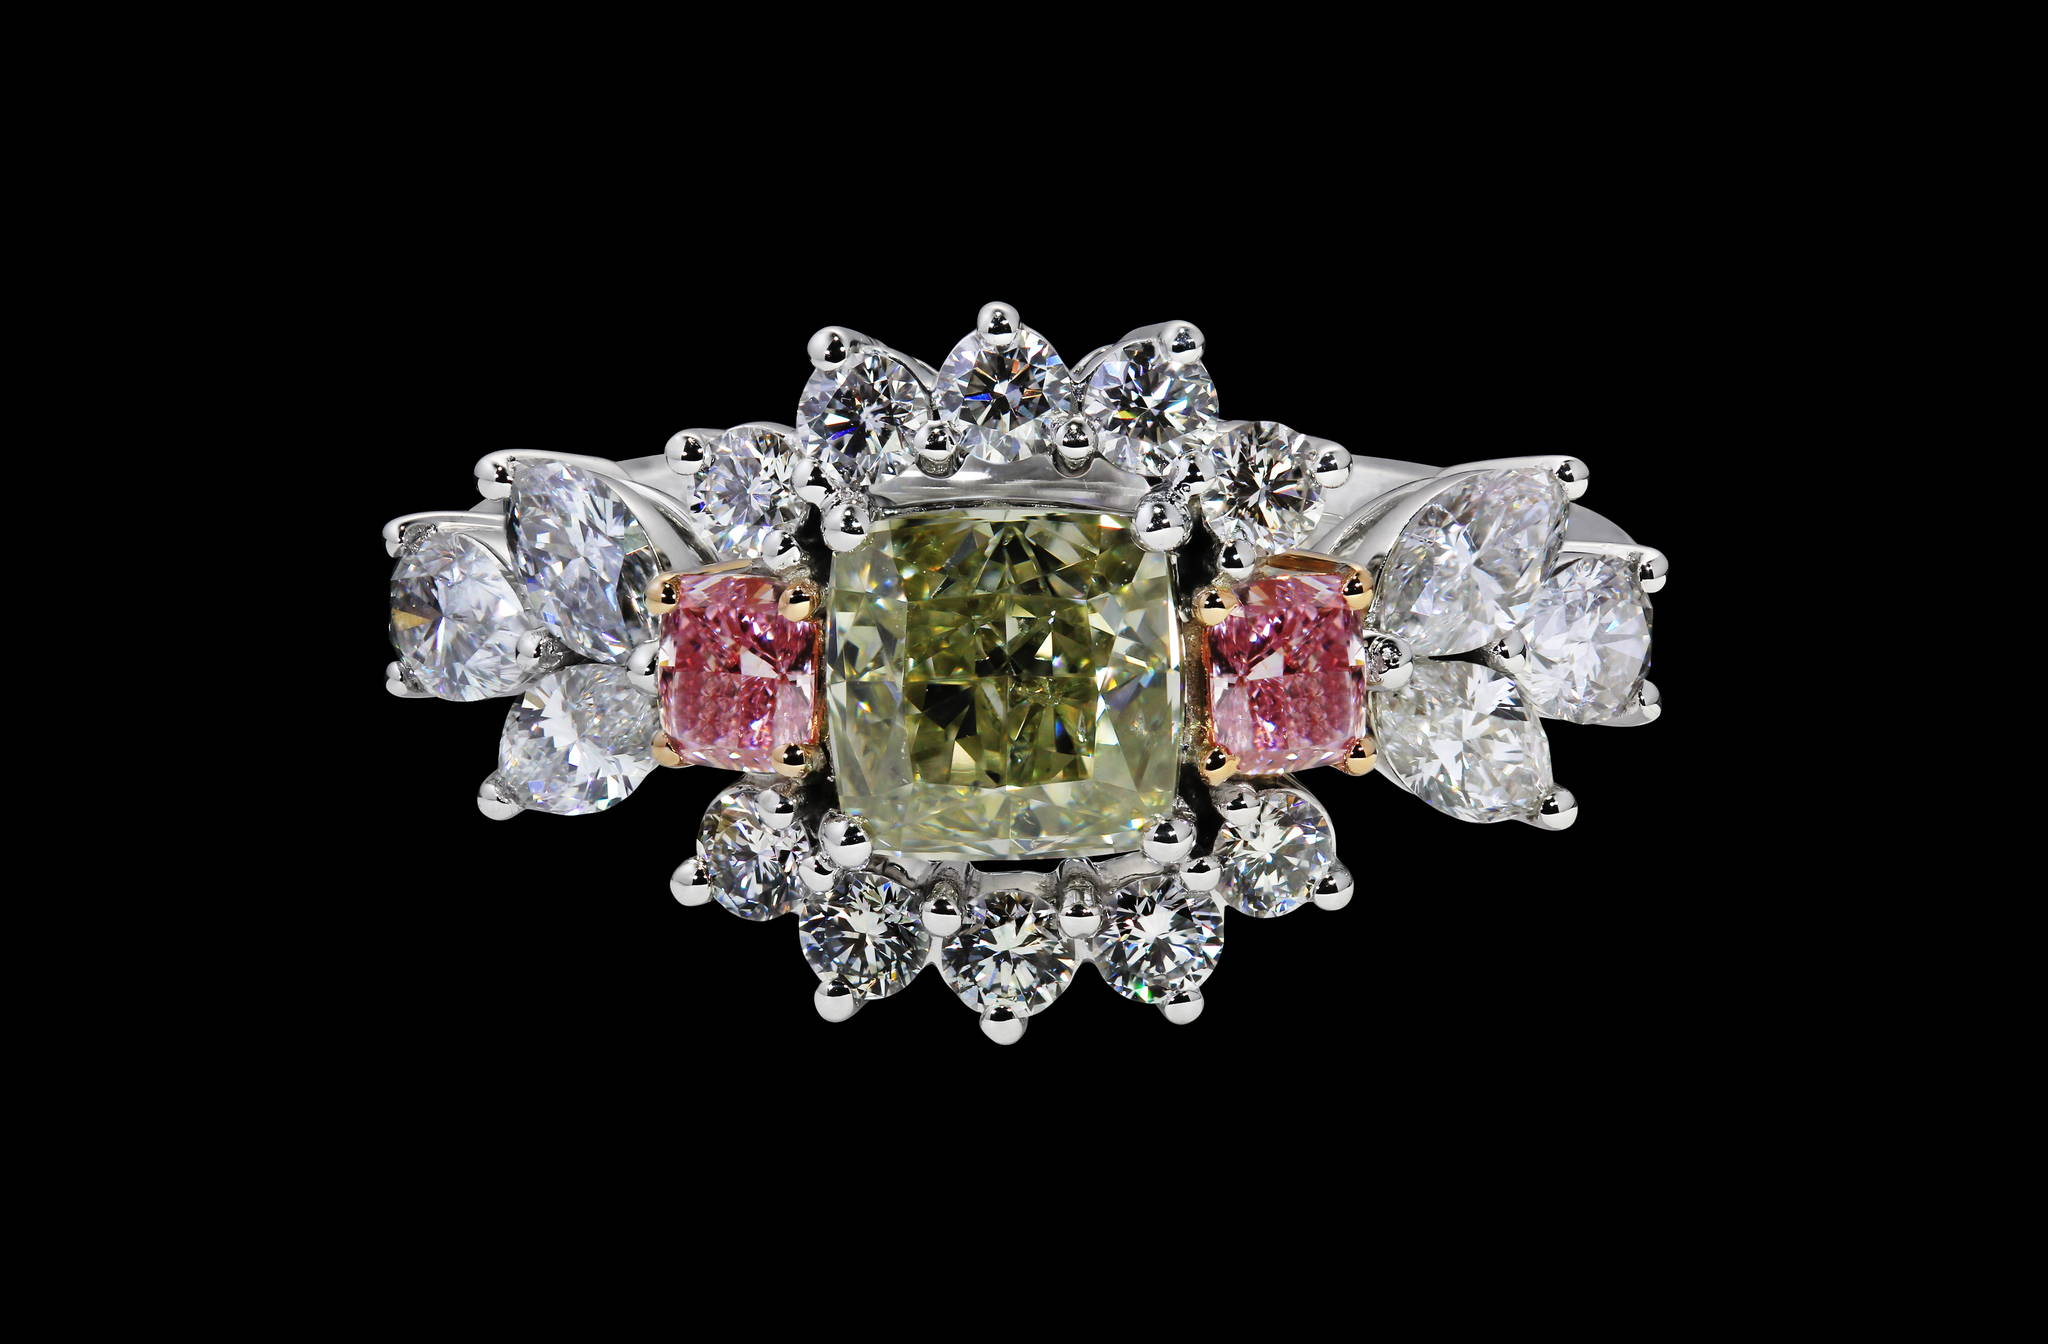 Floral Diamond Ring top view